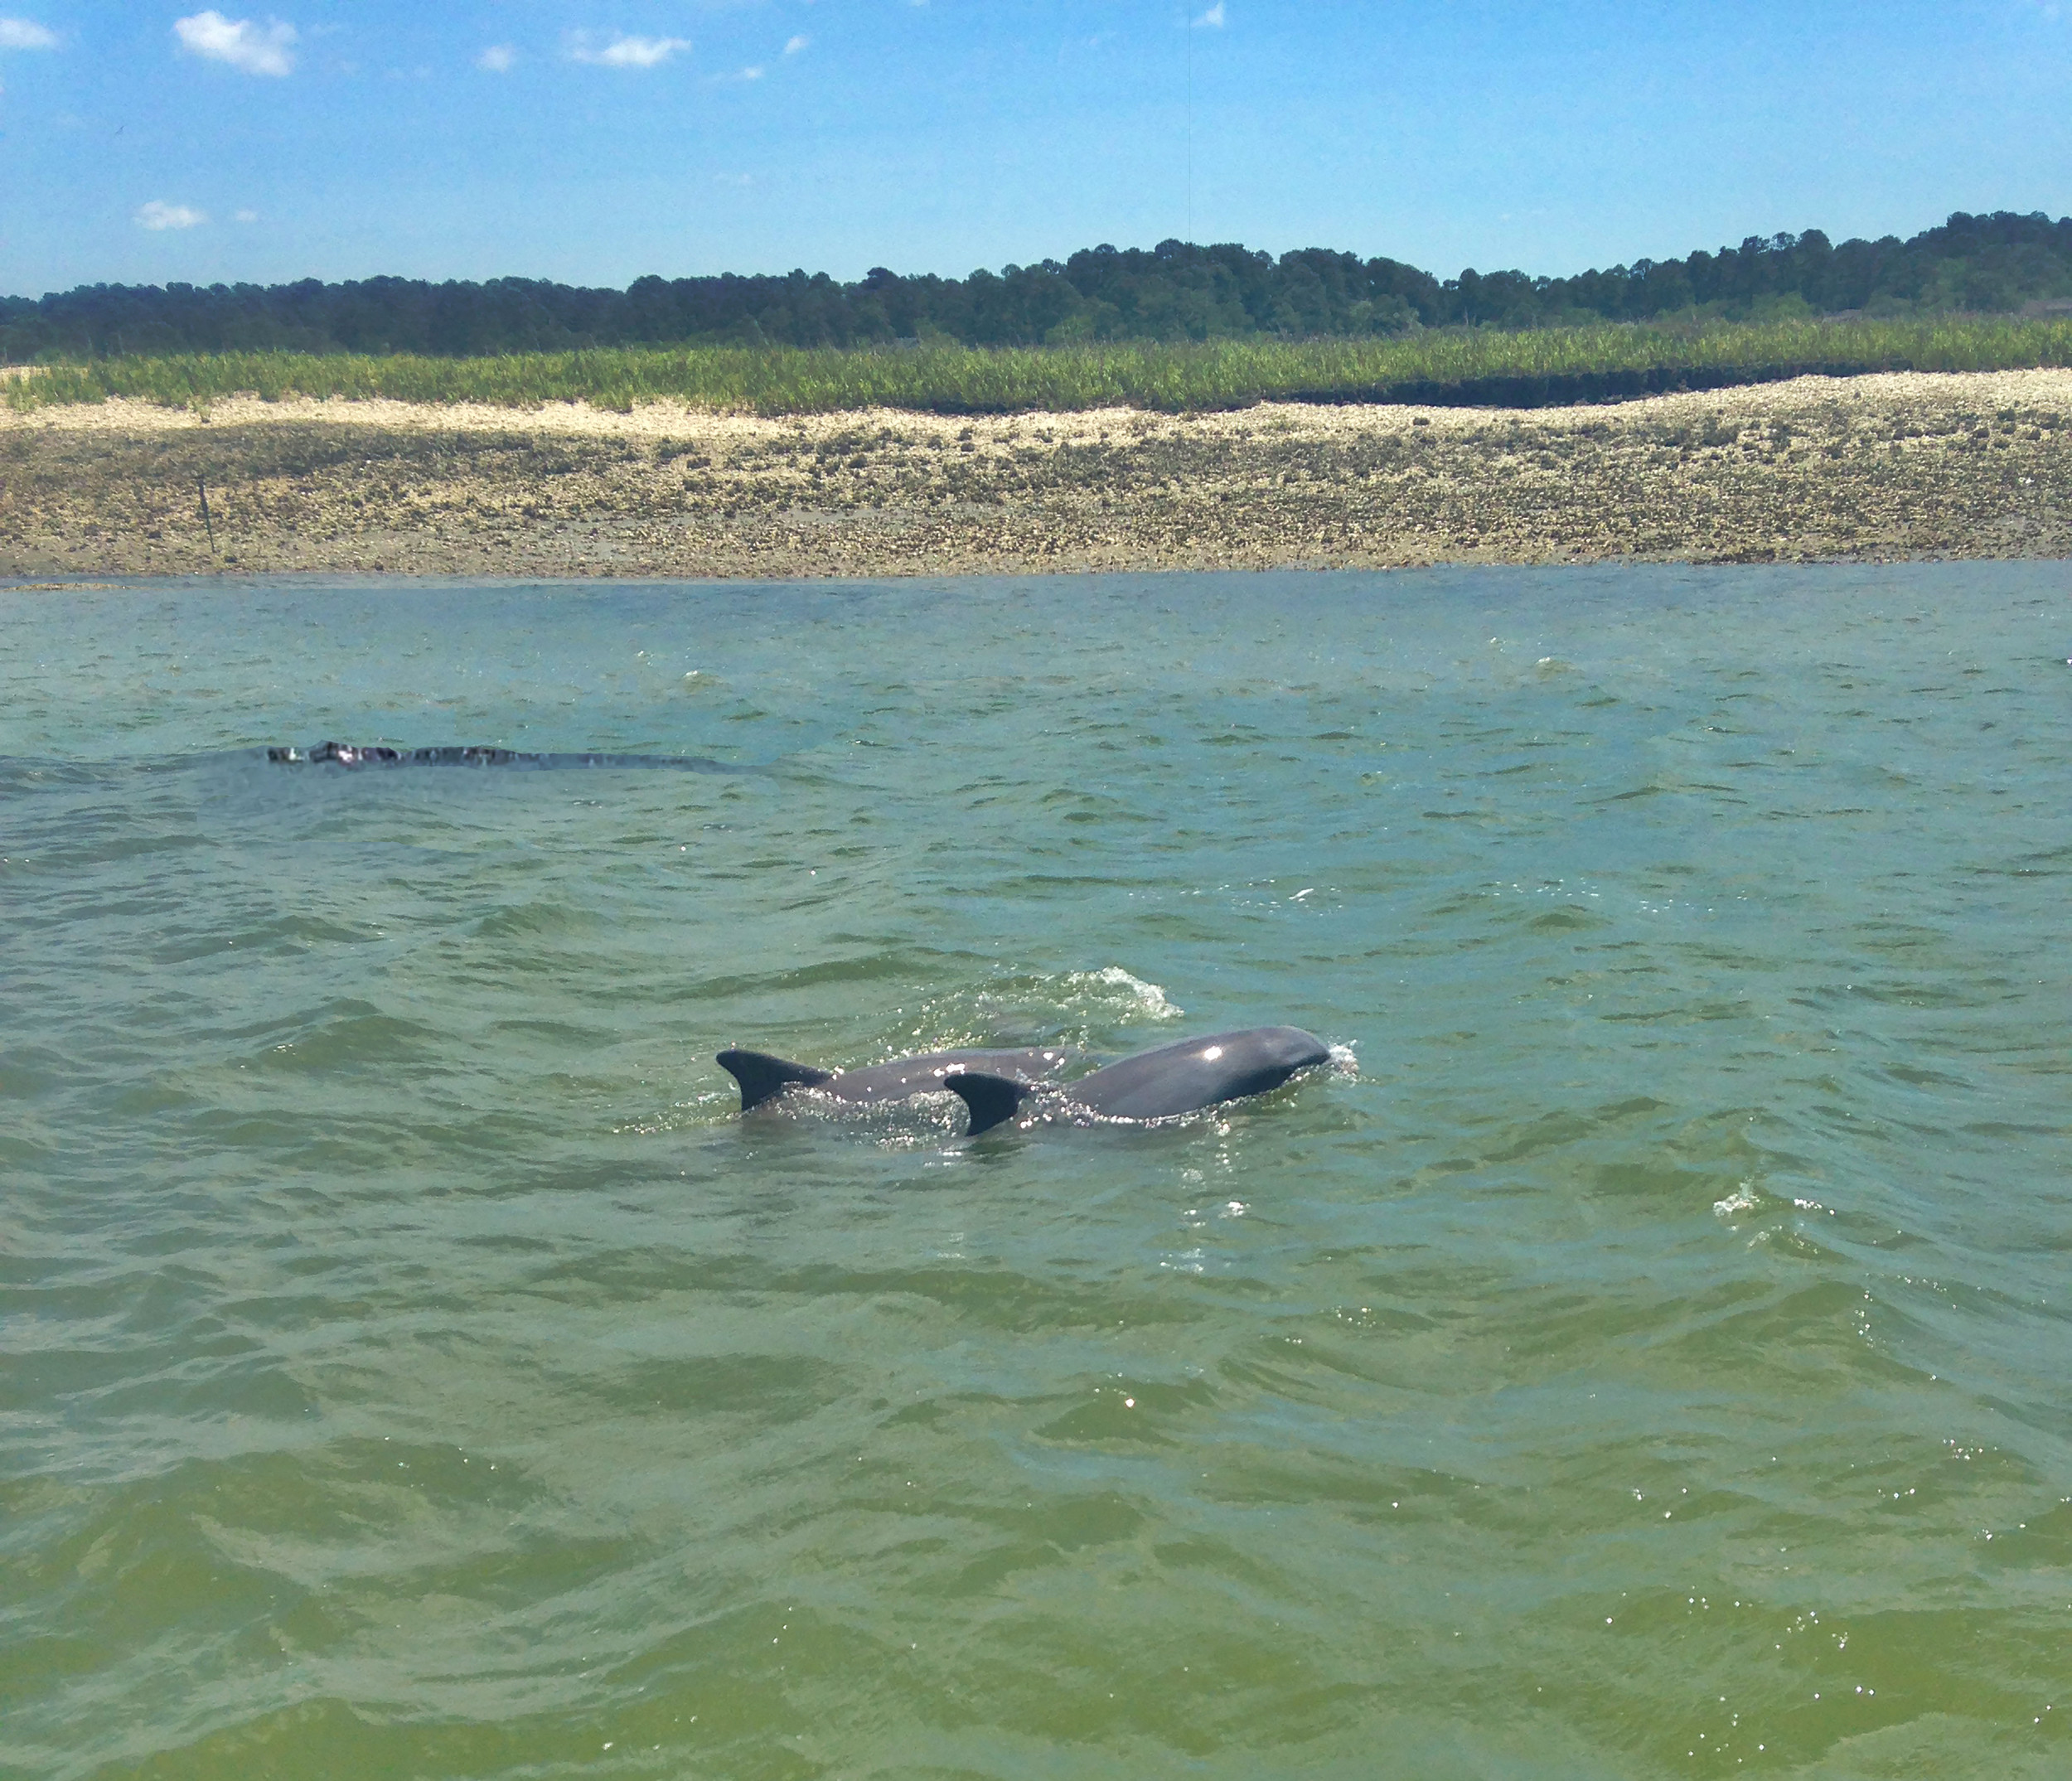 Alligator swimming with Dolphins